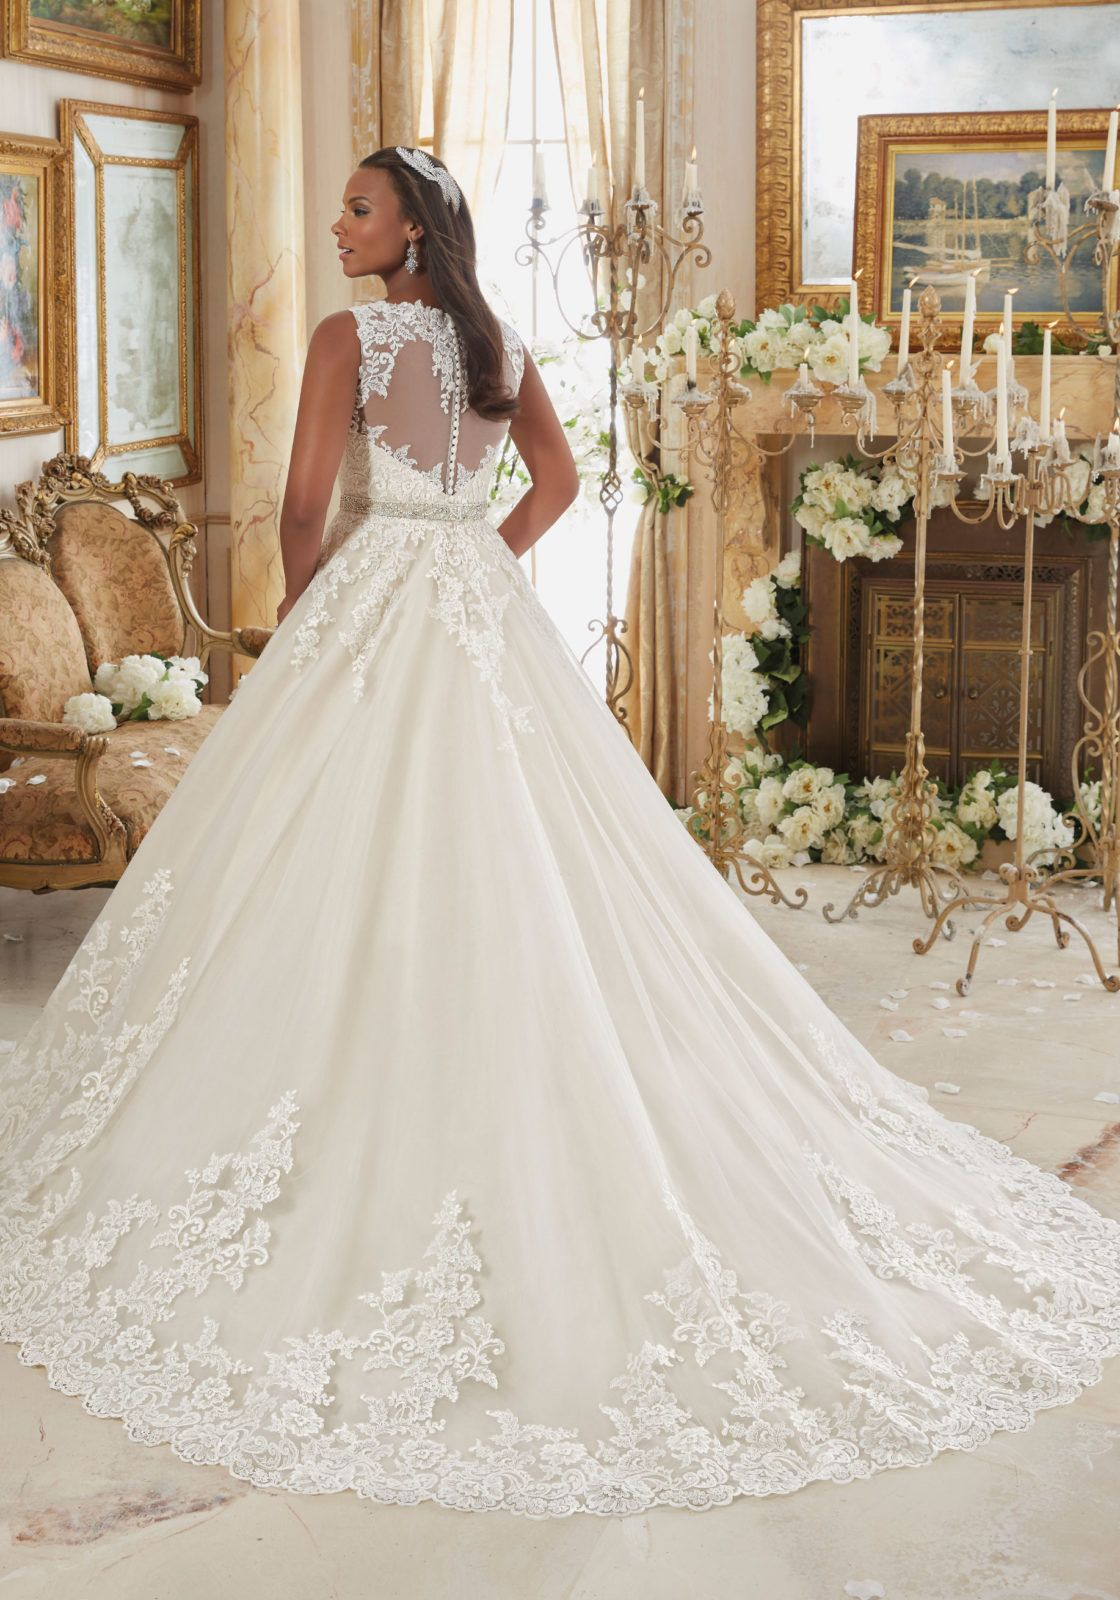 Plus size wedding dress rental  Embroidered Lace Appliques on Tulle Ball Gown with Scalloped Hemline